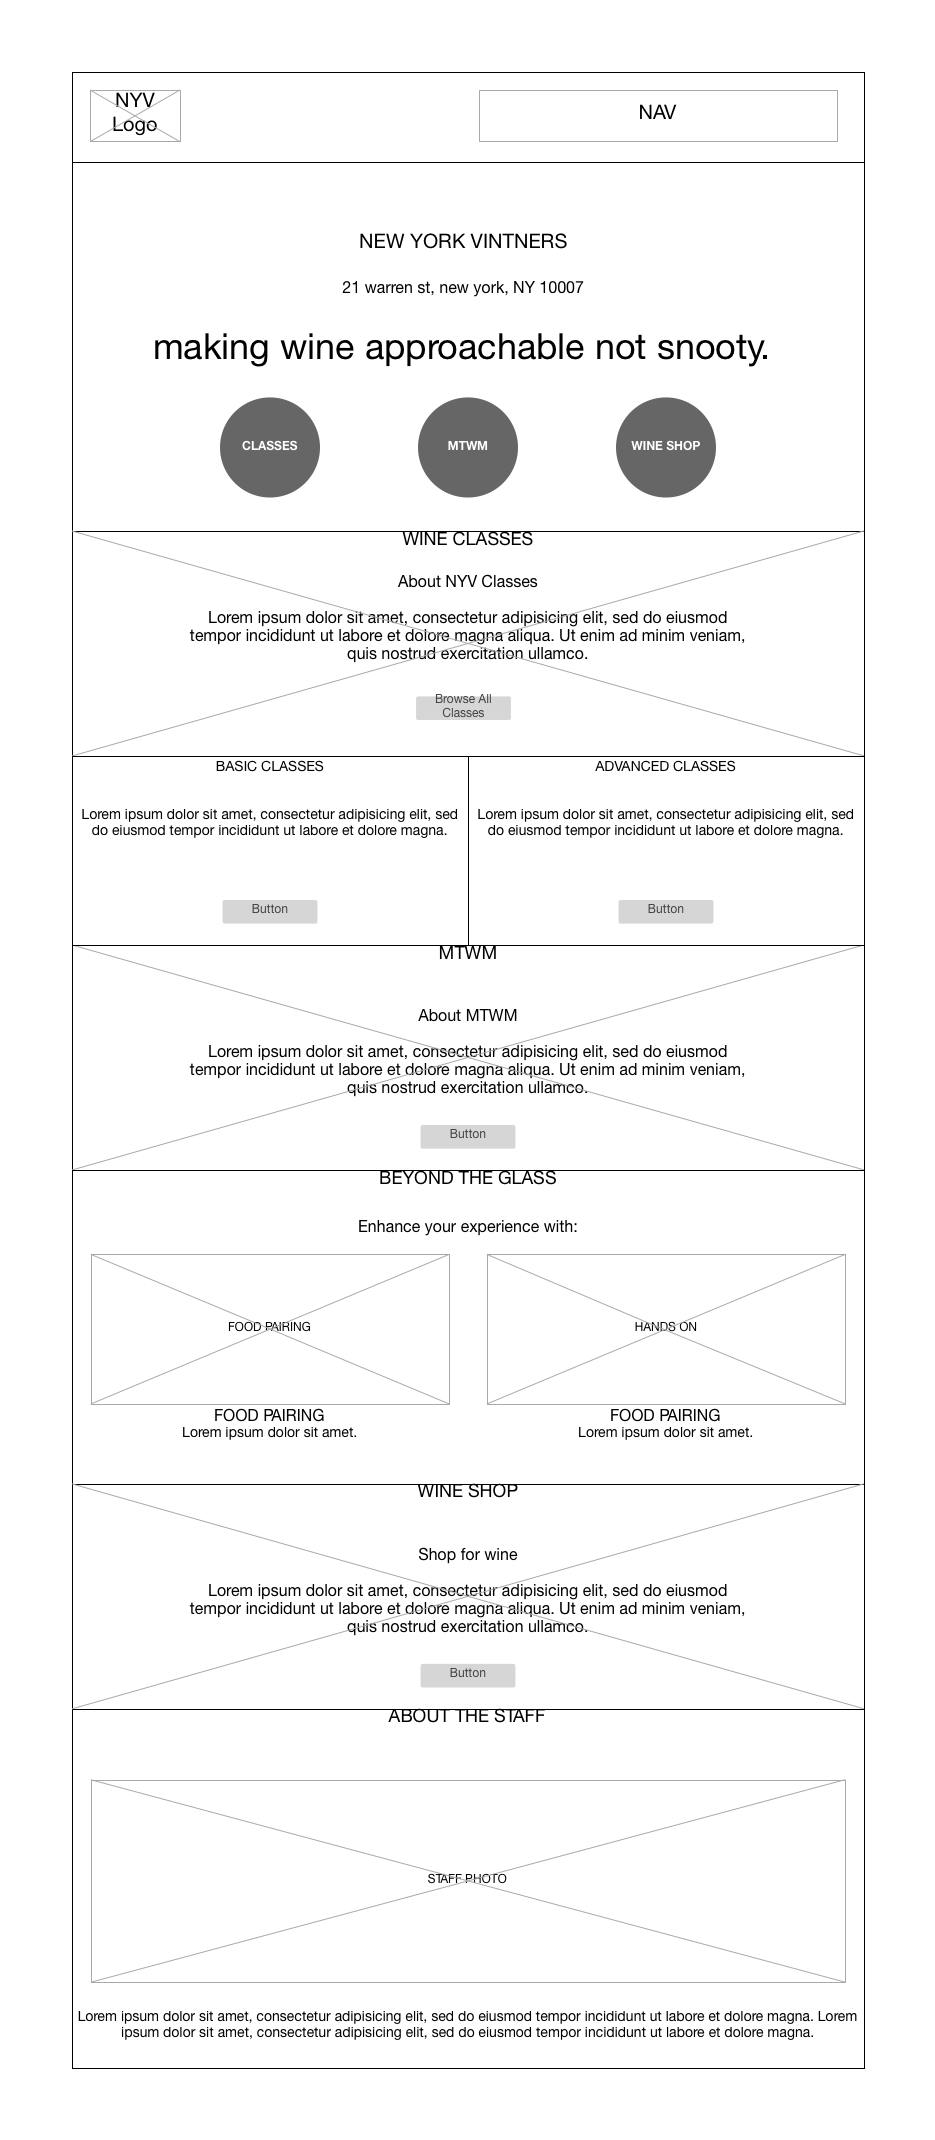 nyv-wireframe.png